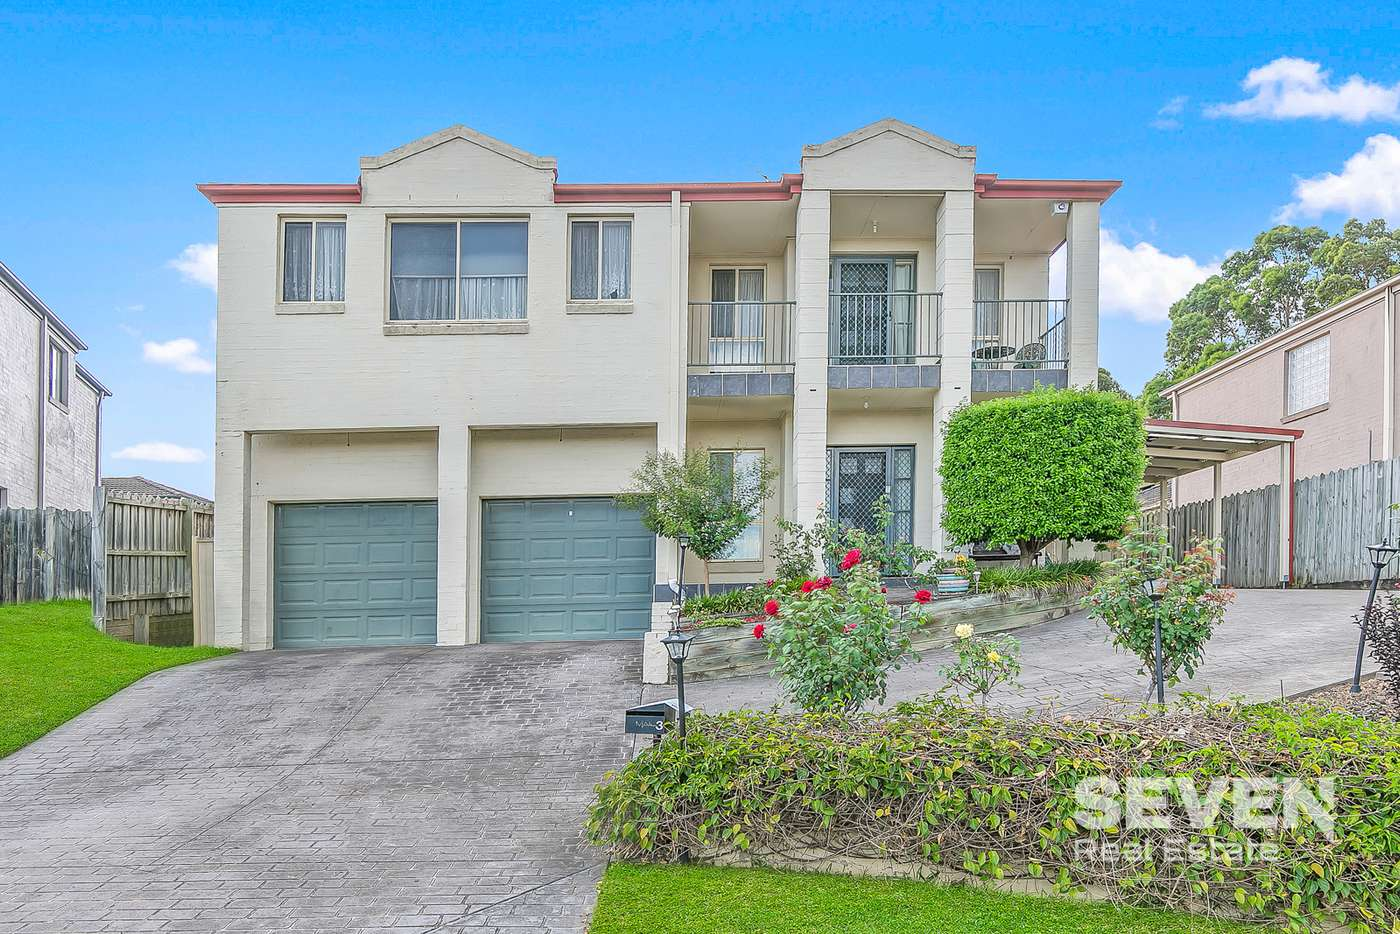 Main view of Homely house listing, 3 Hopkins Court, Rouse Hill NSW 2155